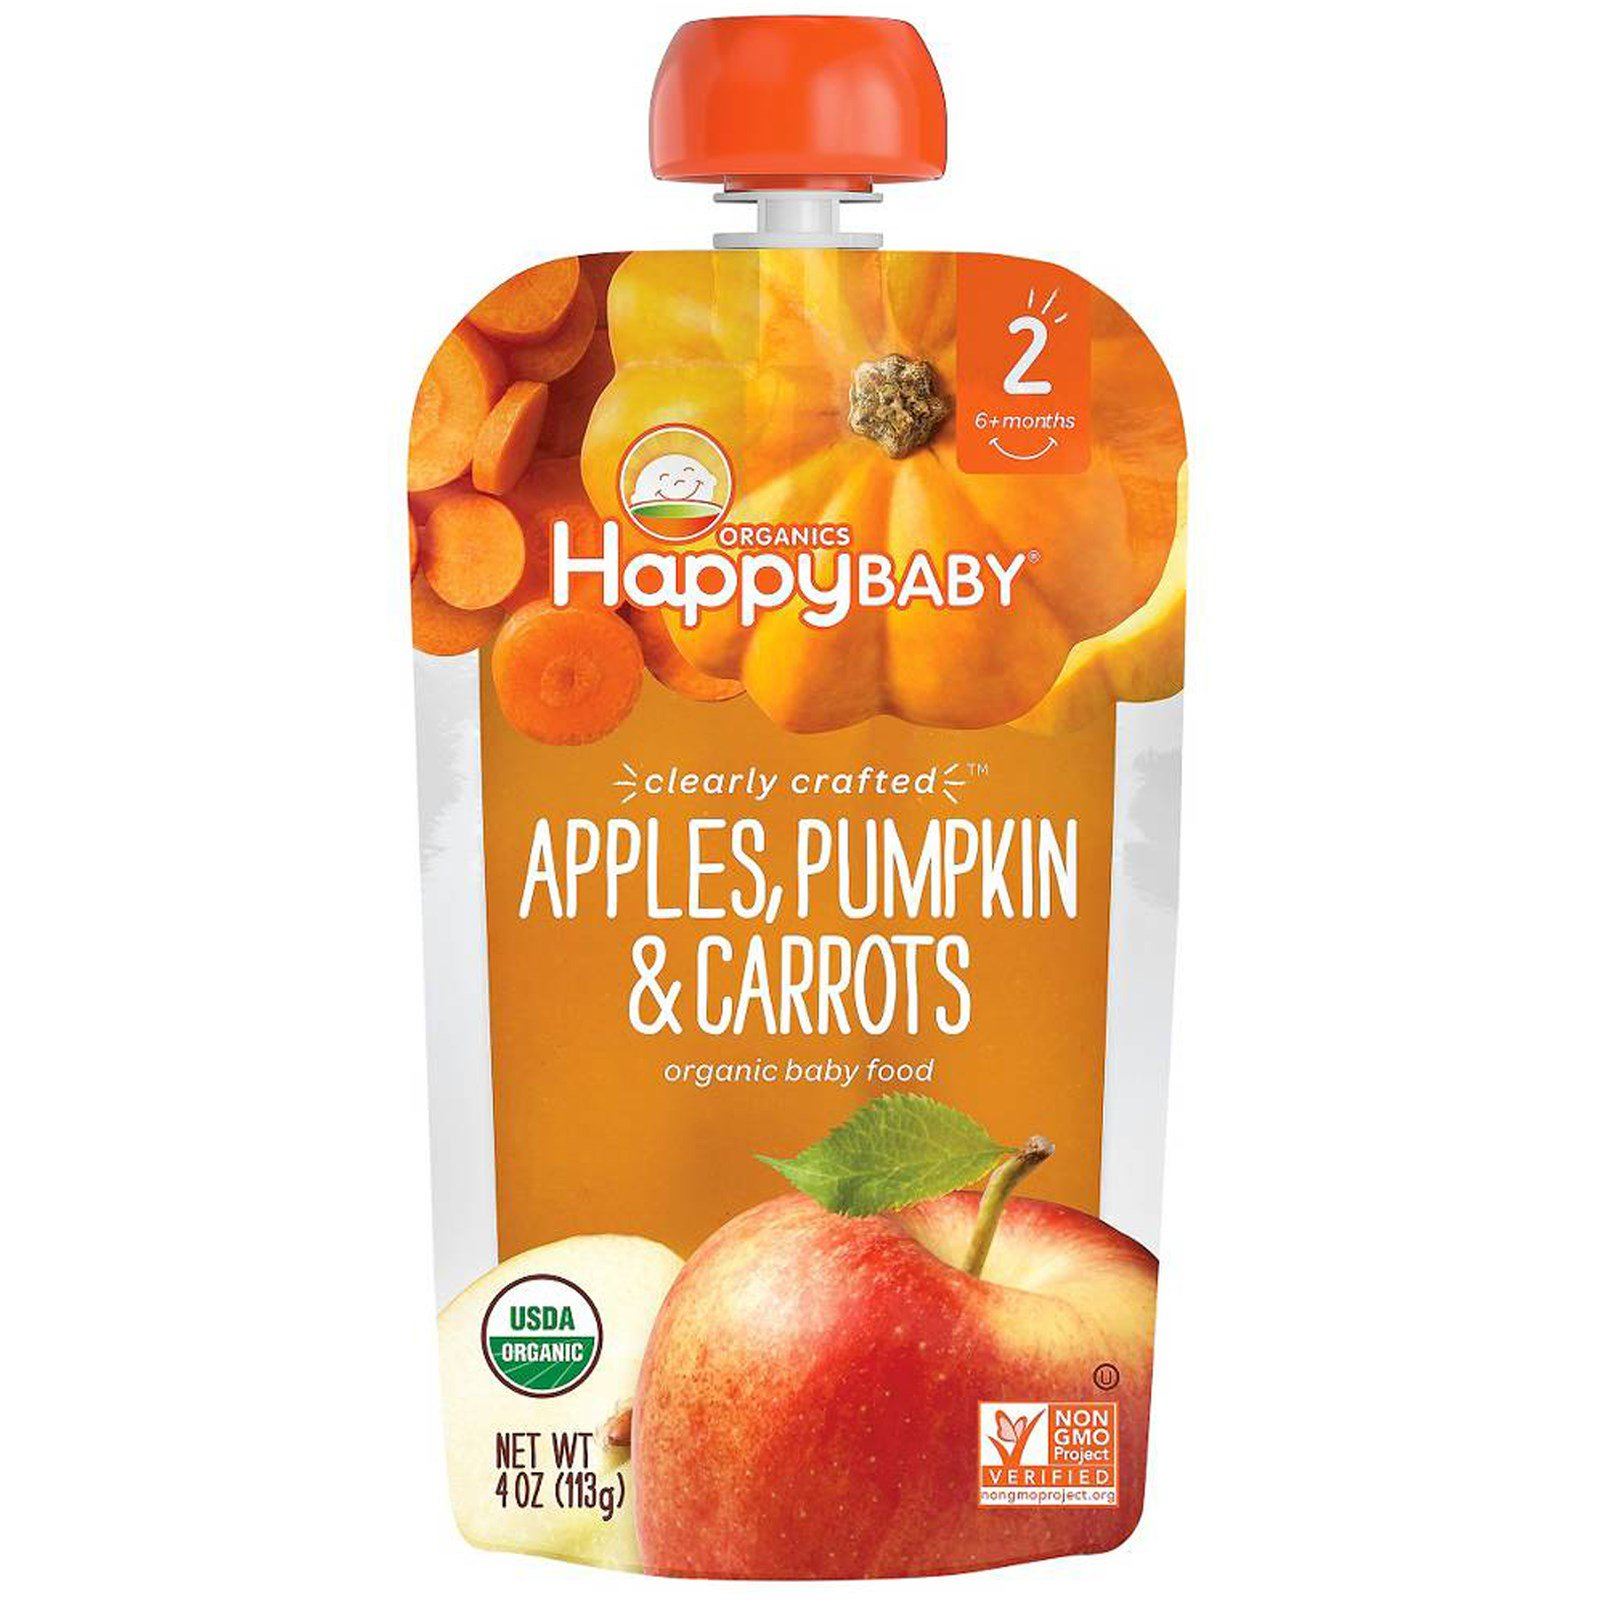 Nurture Inc. (Happy Baby), Organic Baby Food, Stage 2, Clearly Crafted, Apples, Pumpkin & Carrots, 6+ Months, 4 oz(pack of 4)